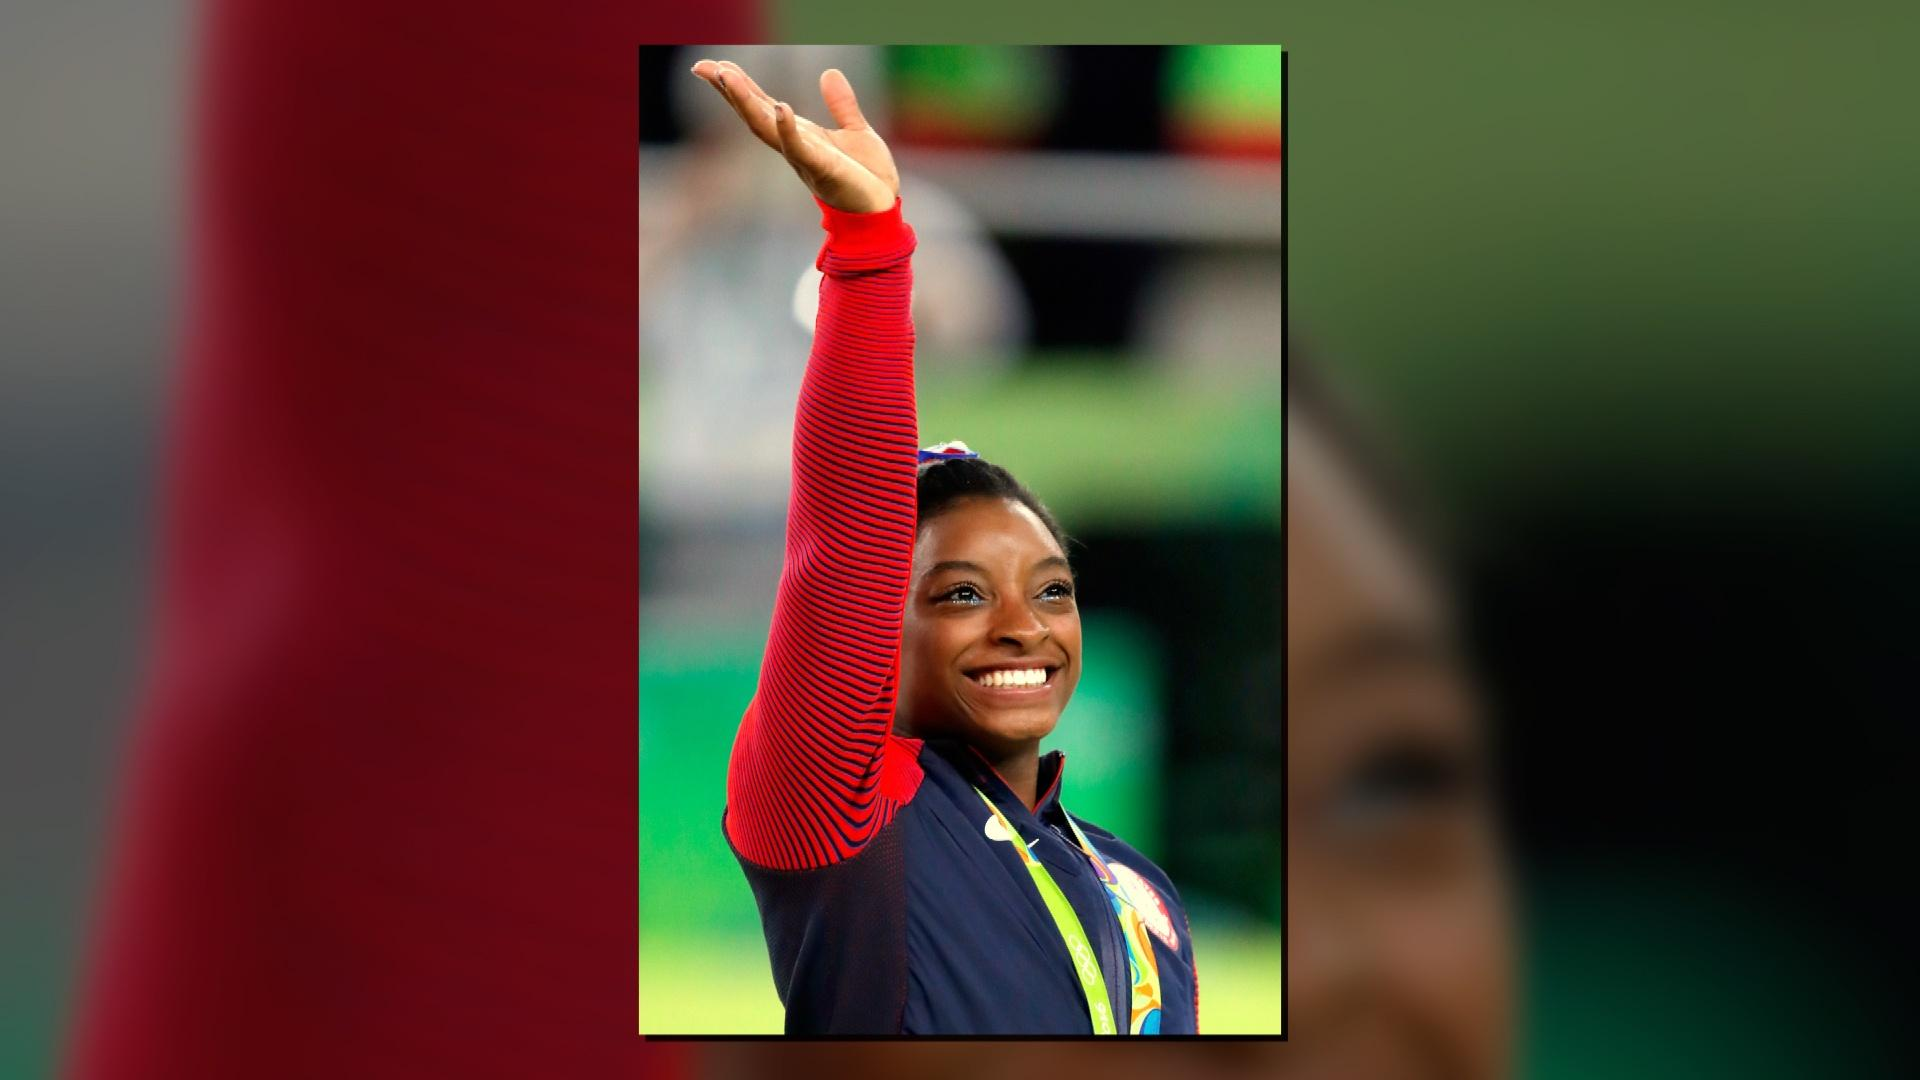 www.kcts9.org: To The Contrary: Simone Biles; Women in Business; LGBT Politicians